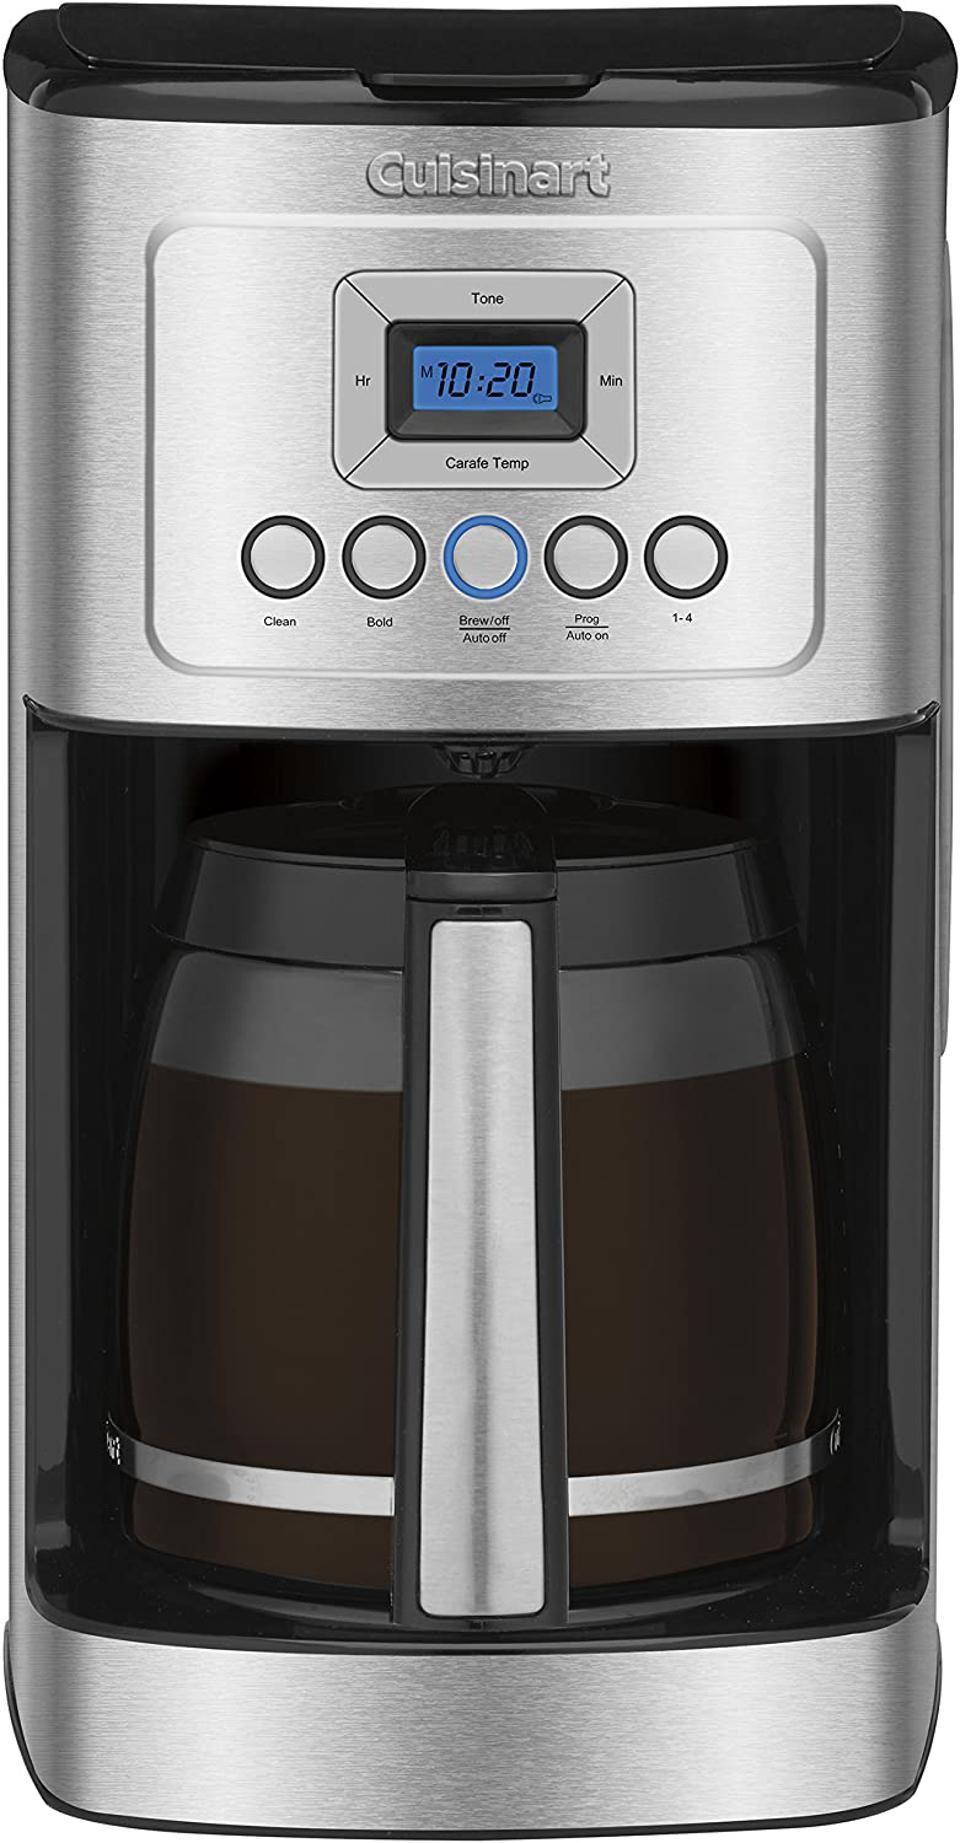 Cuisinart PerfecTemp 14-Cup Stainless Steel Drip Coffee Maker